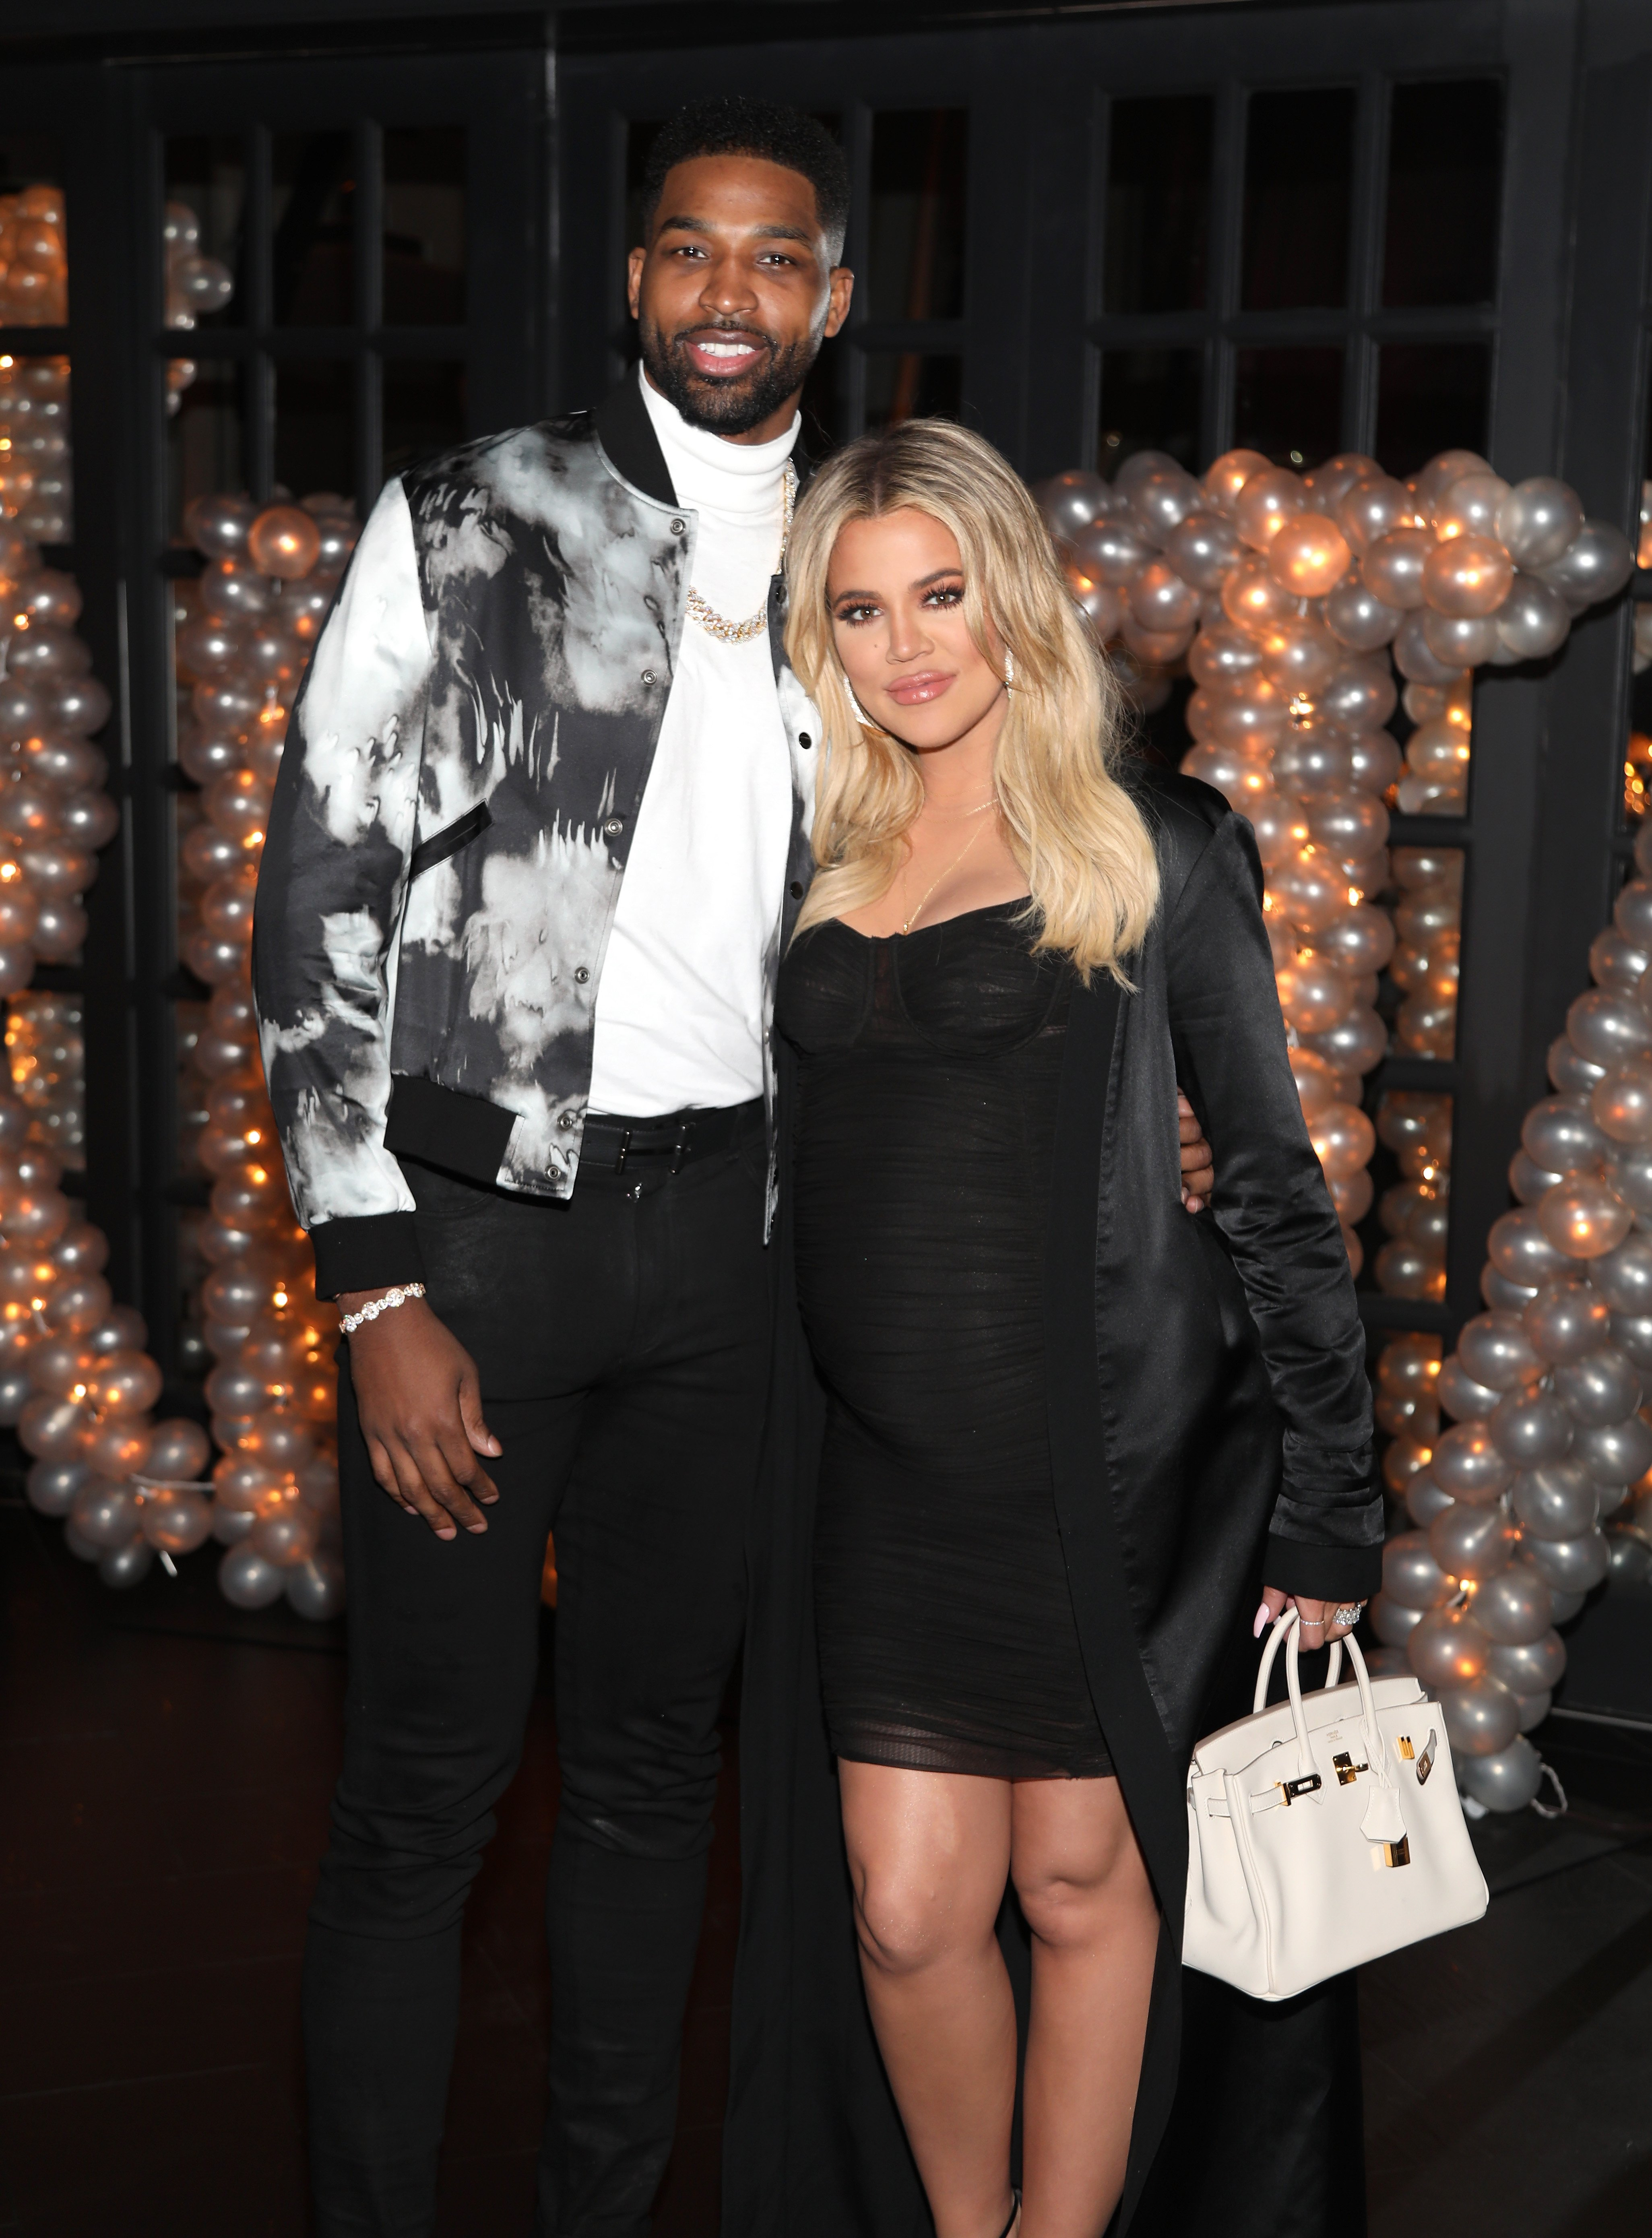 (Happier Times)Tristan Thompson & Khloe Kardashian celebrating Thompson's Birthday in Los Angeles on March 10, 2018. | Photo: Getty Images